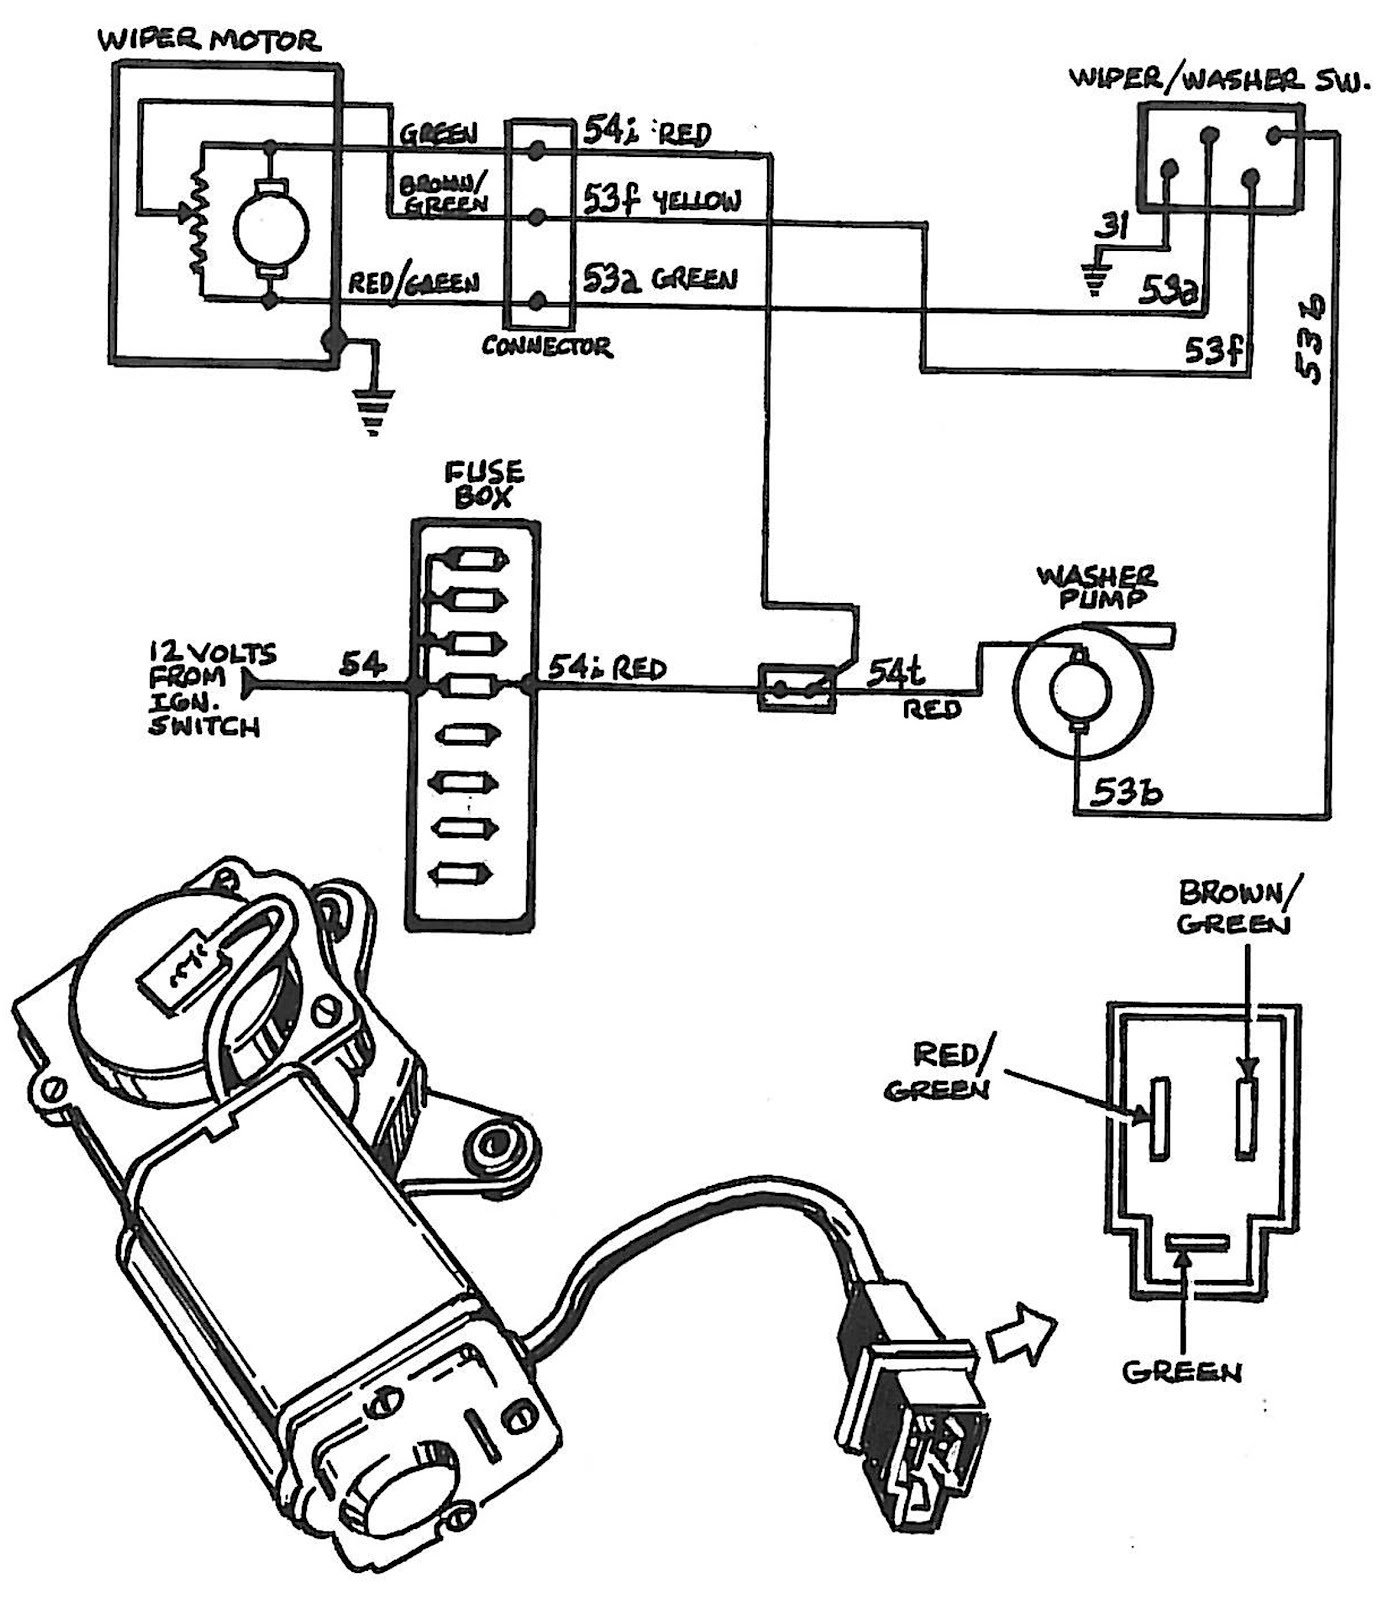 chevy windshield wiper motor wiring diagram CgTTPww wiring diagram for boat wiper motor readingrat net afi wiper motor wiring diagram at crackthecode.co